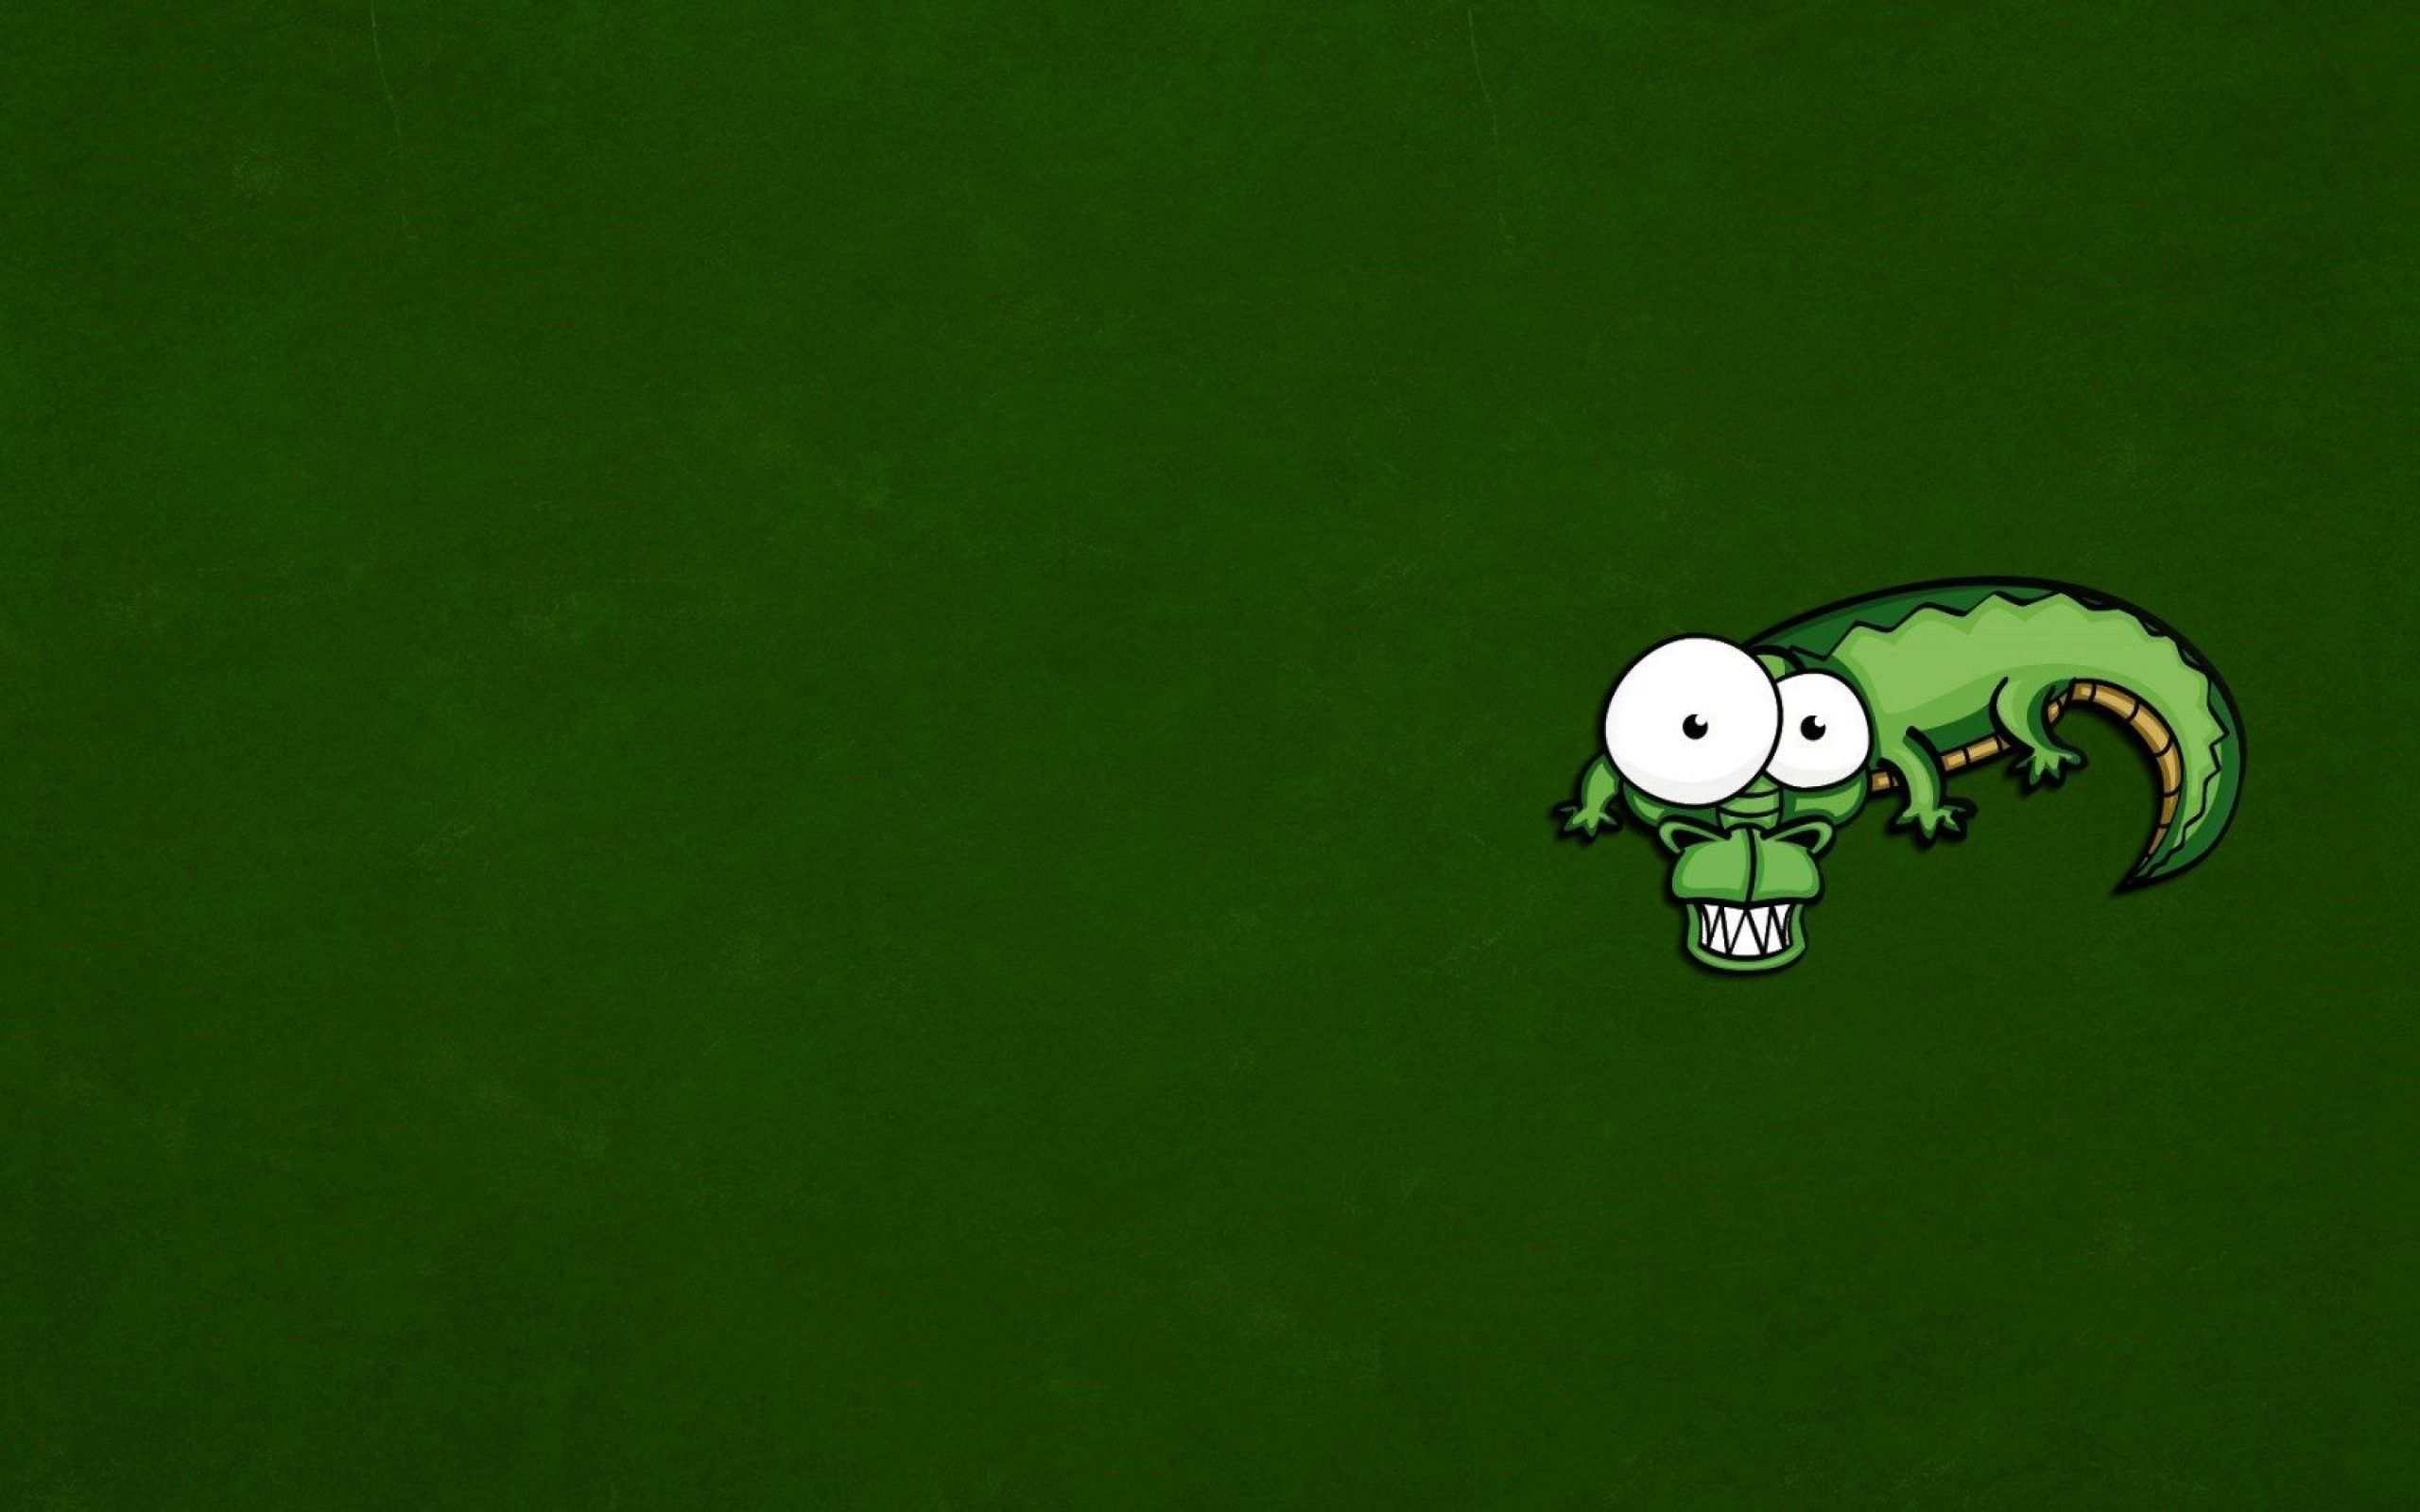 Funny Cartoon Wallpapers Wallpaper For Mobile